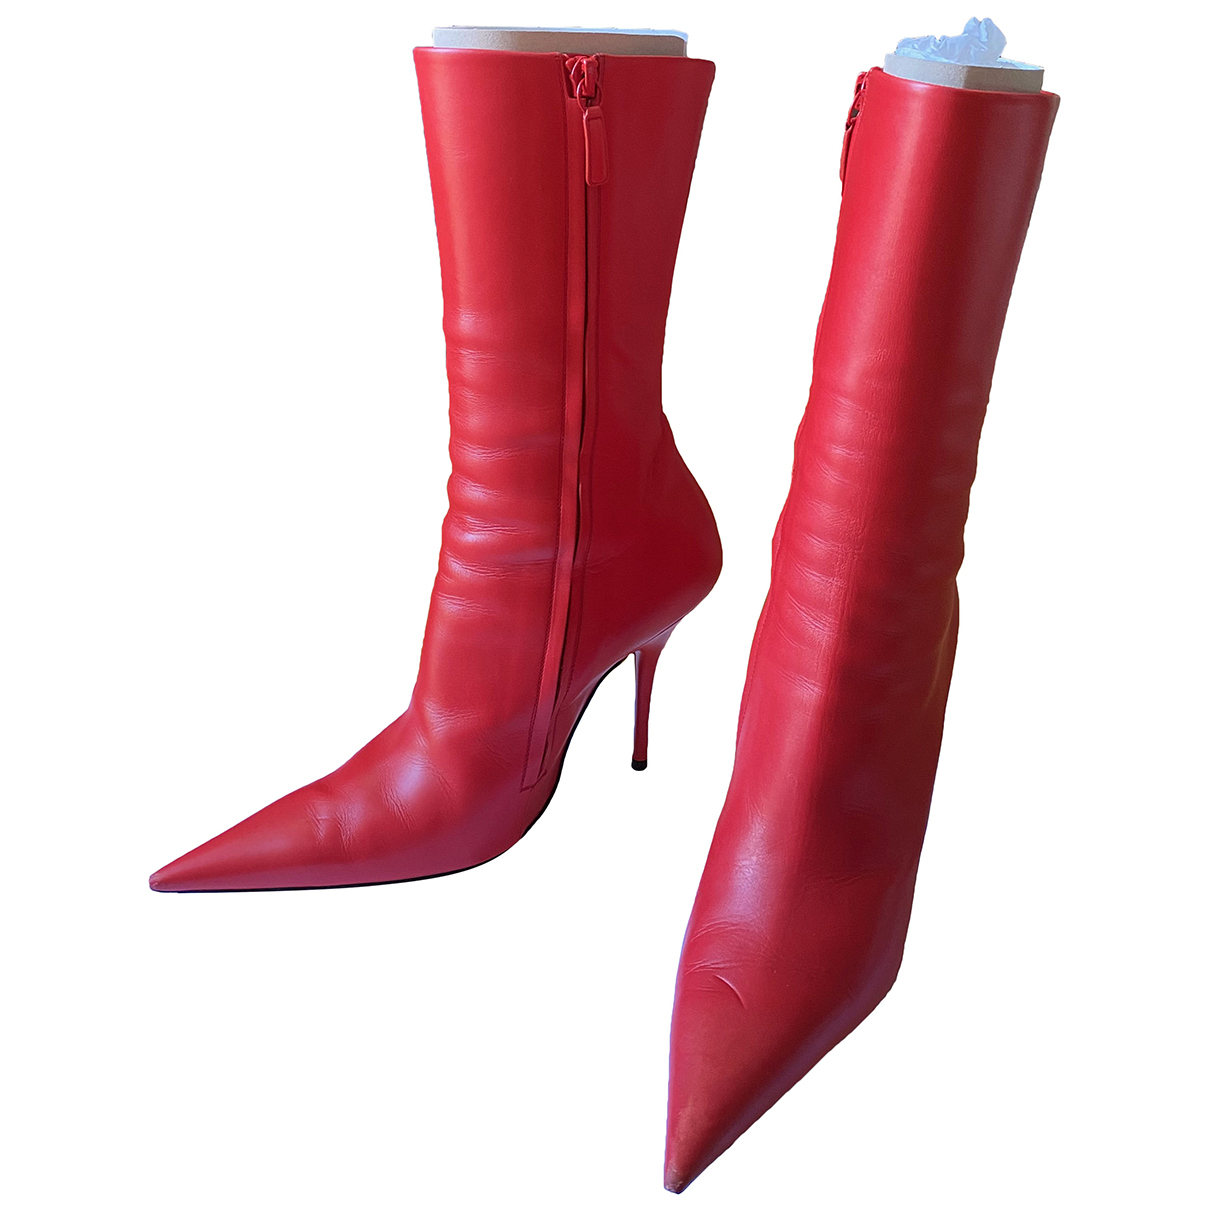 Balenciaga Knife Red Leather Ankle boots for Women 37 EU